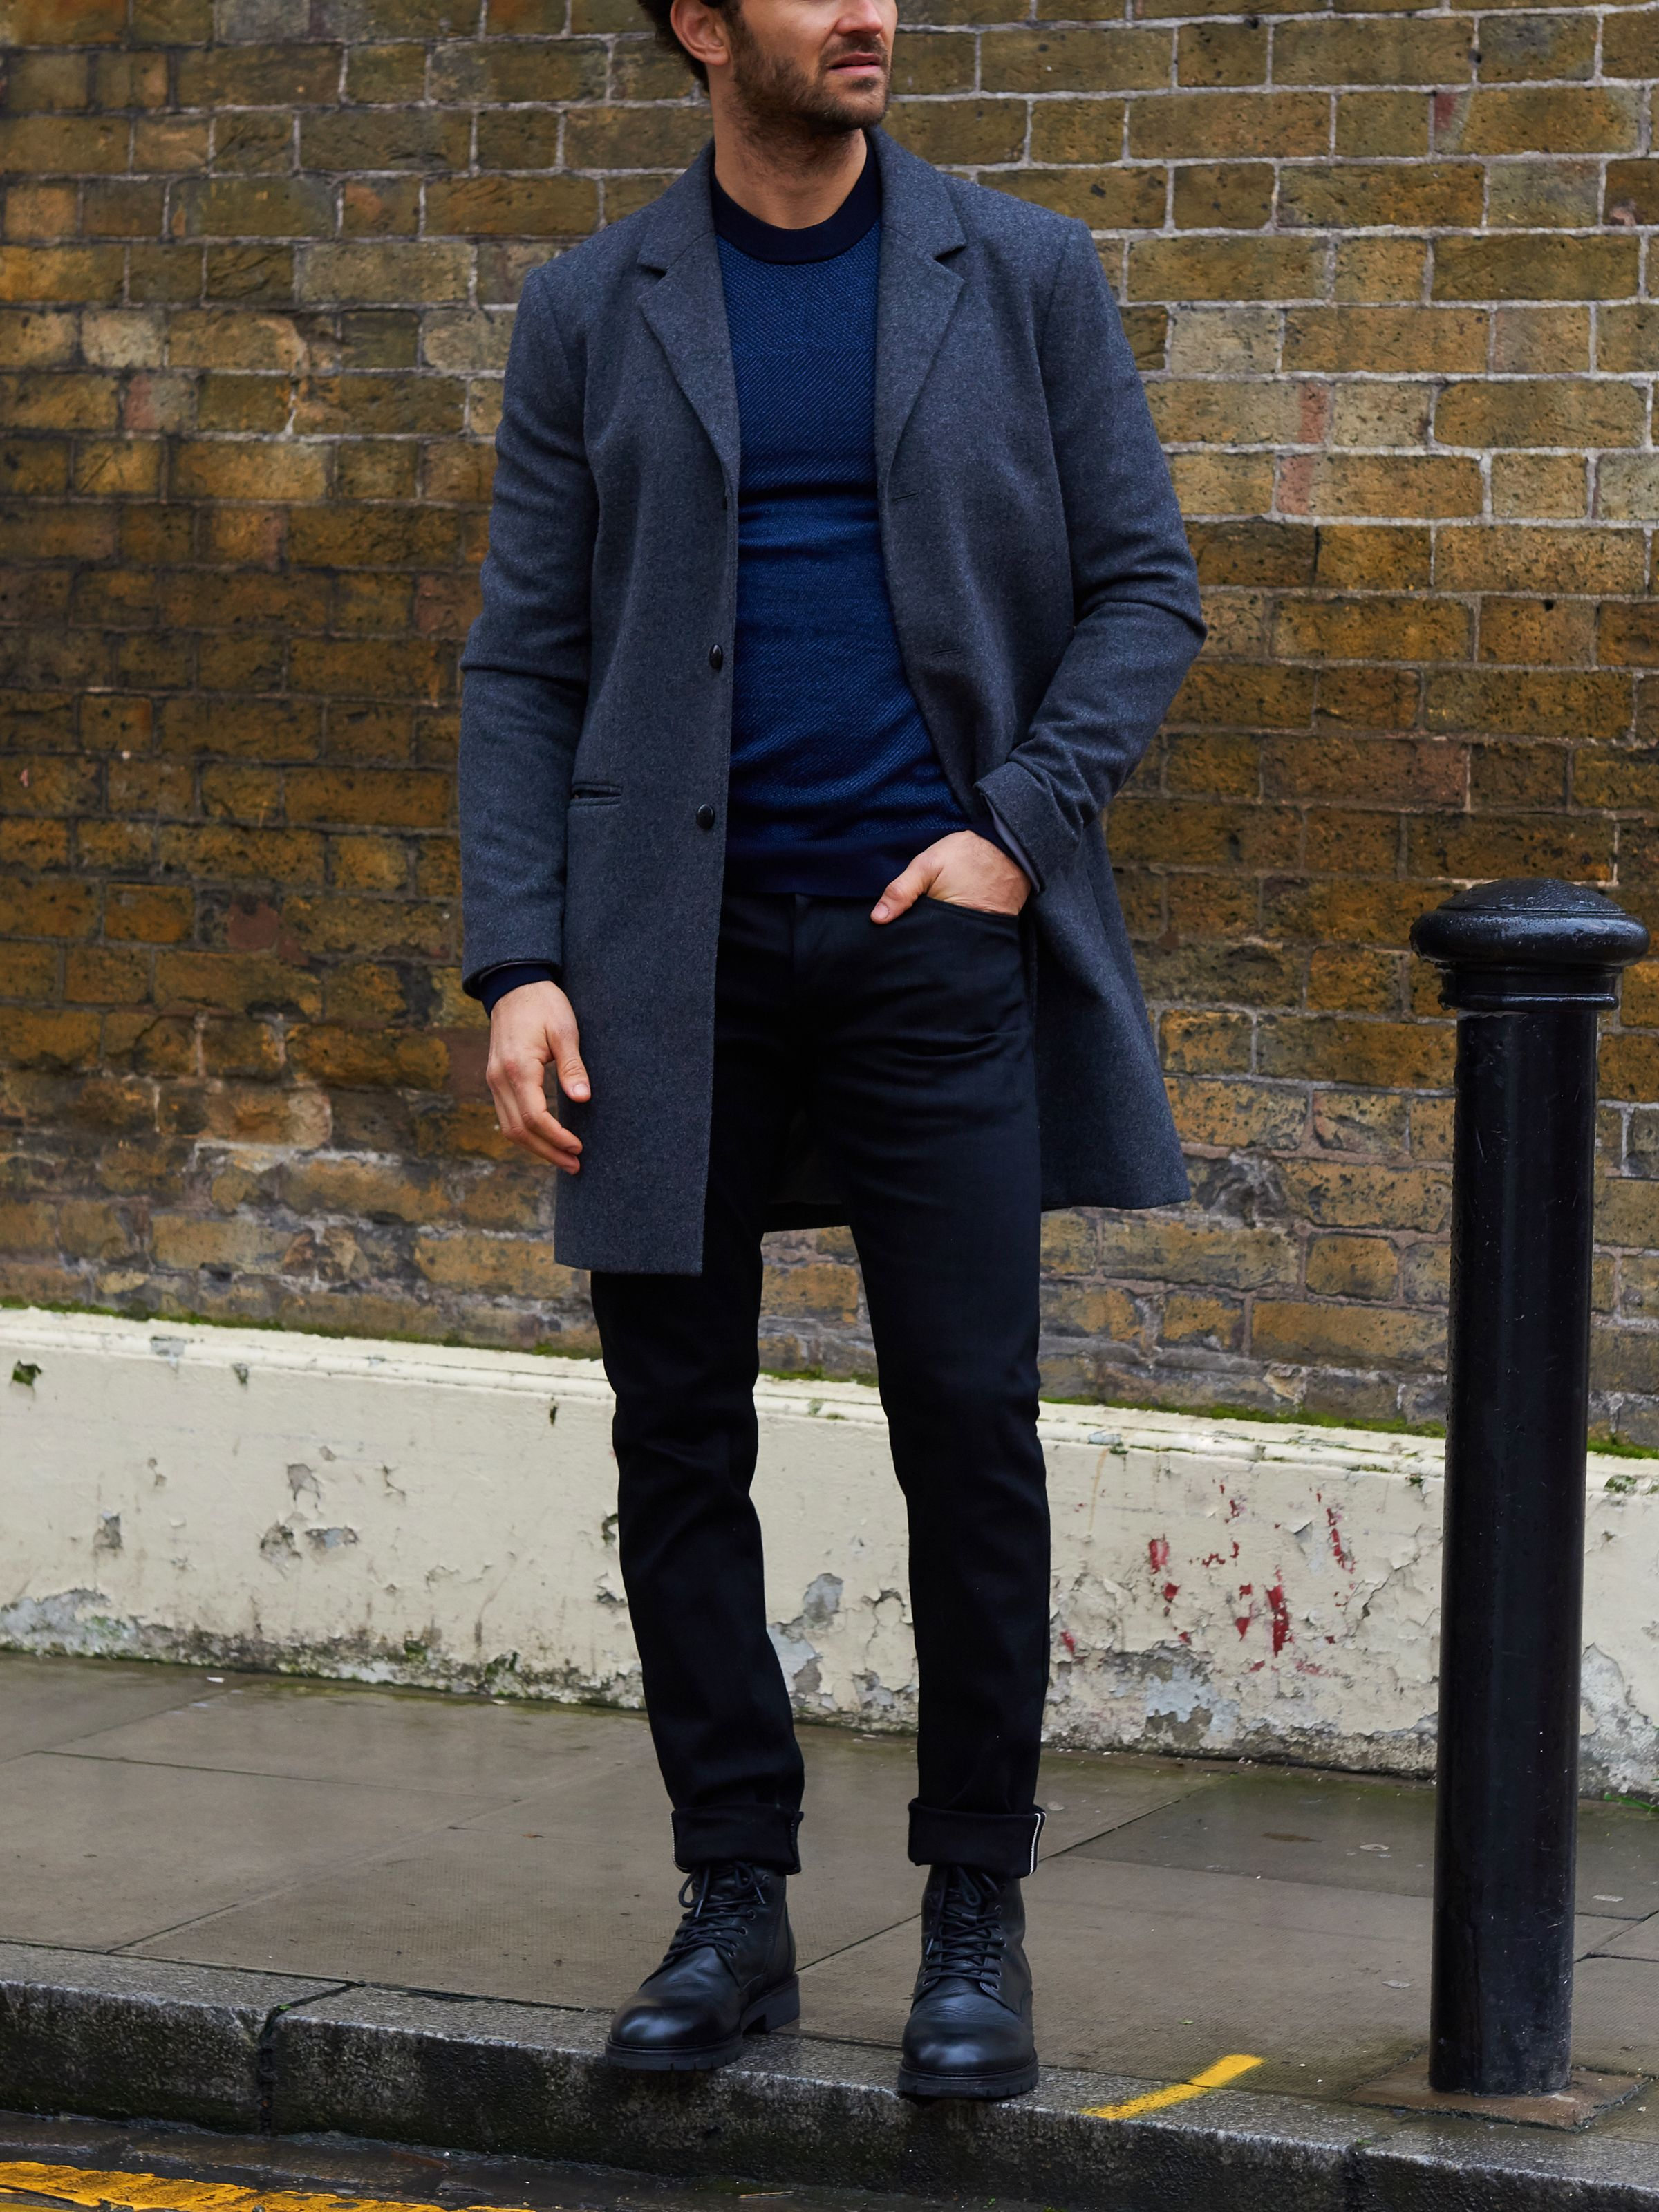 Men's outfit idea for 2021 with single-breasted overcoat, navy plain crew neck knitted jumper, black jeans, lace-up leather boots. Suitable for autumn and winter.